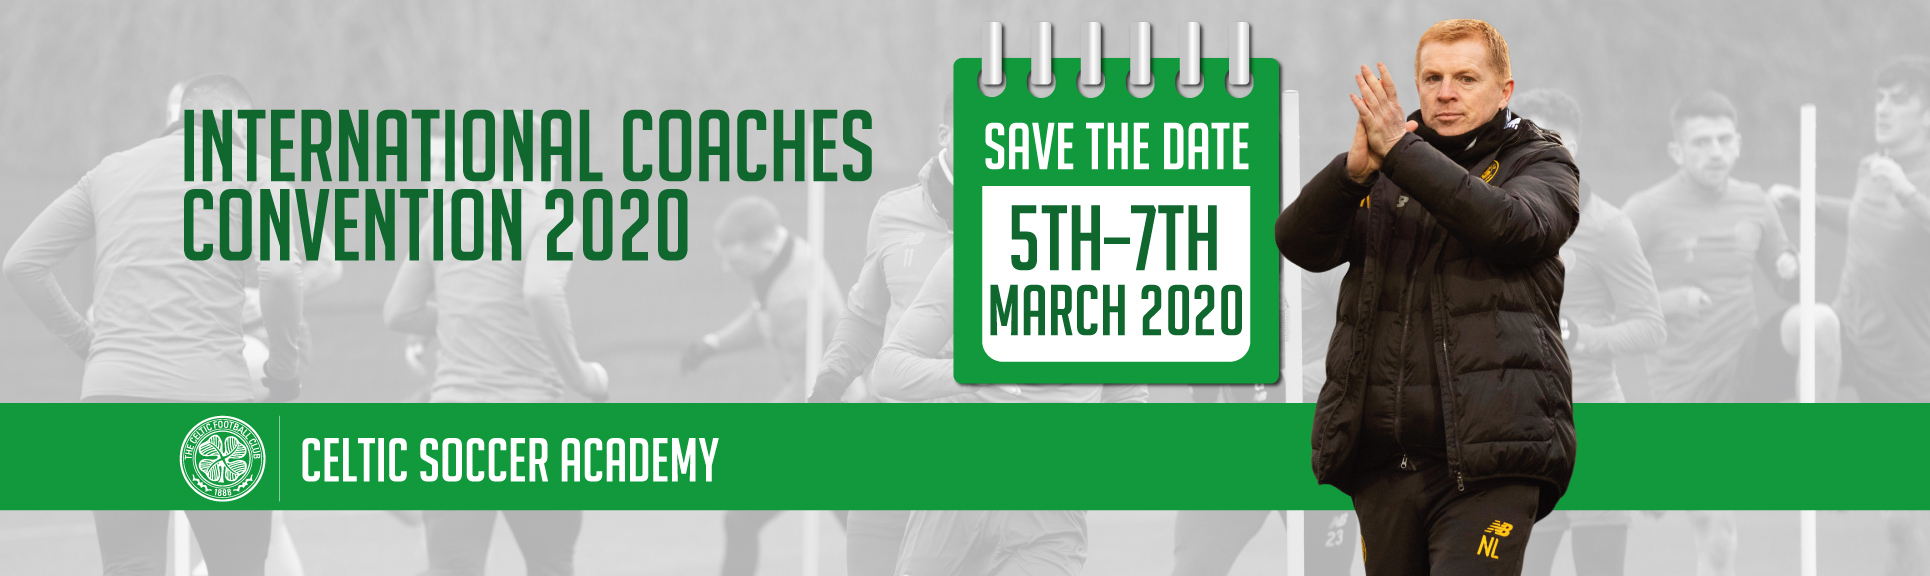 Coaches-Convention-2020-Web-Banner-1930x576